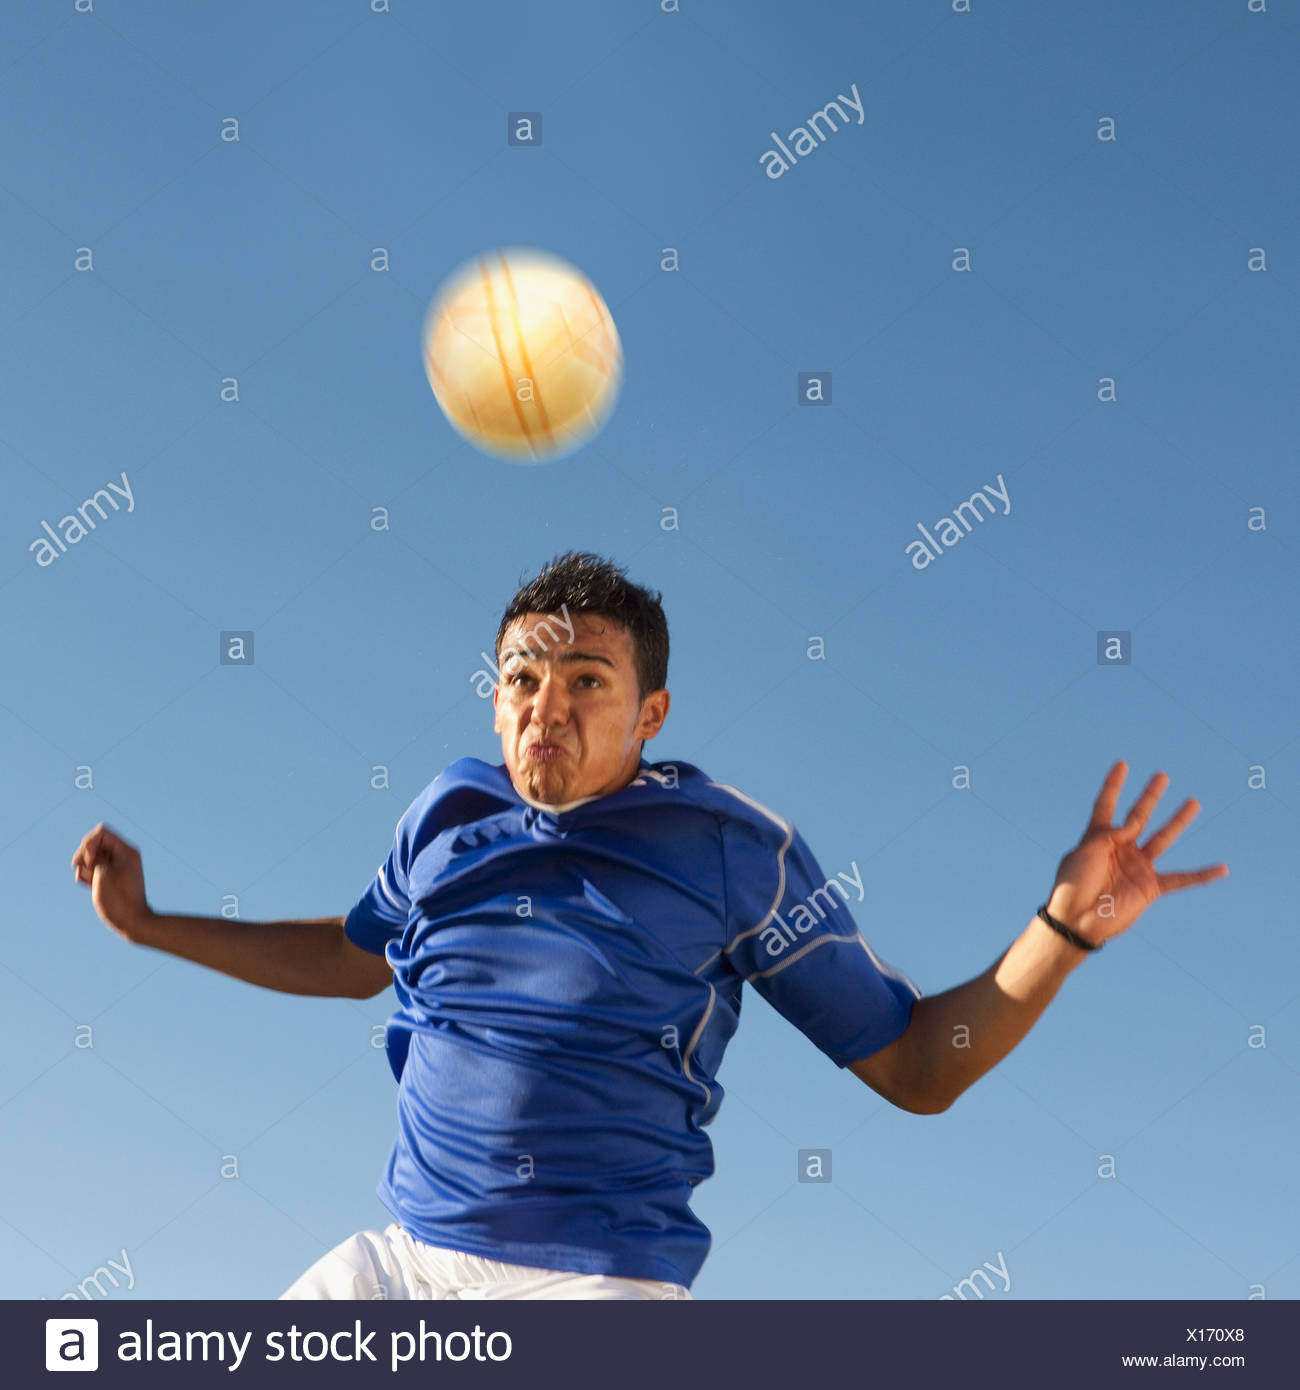 Soccer player heading the ball - Stock Image